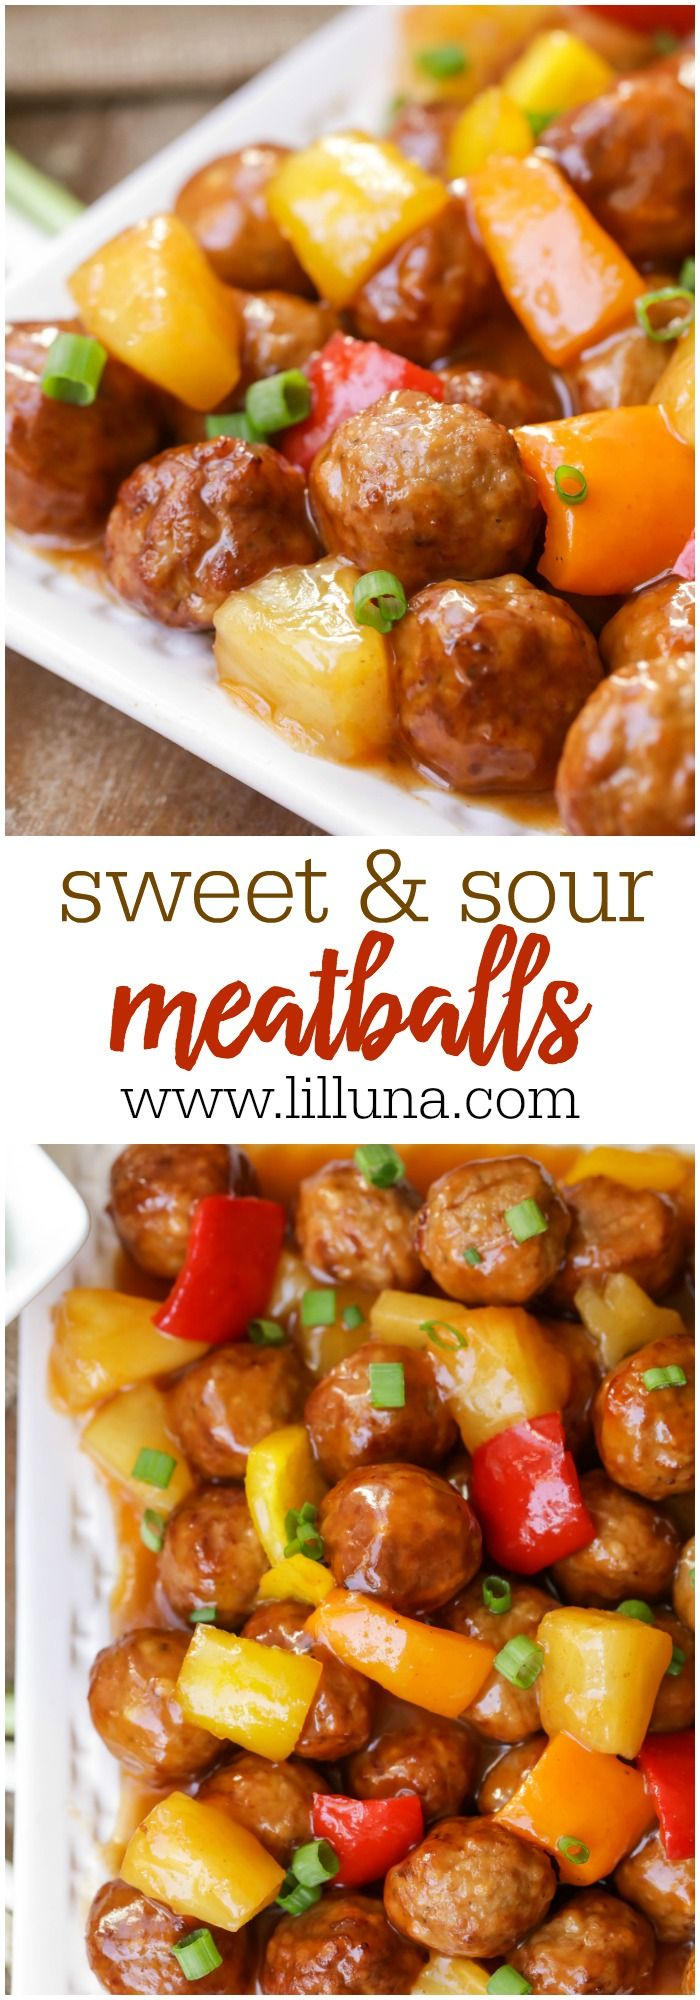 recipe: sweet and sour meatballs with pineapple and tomato sauce [12]